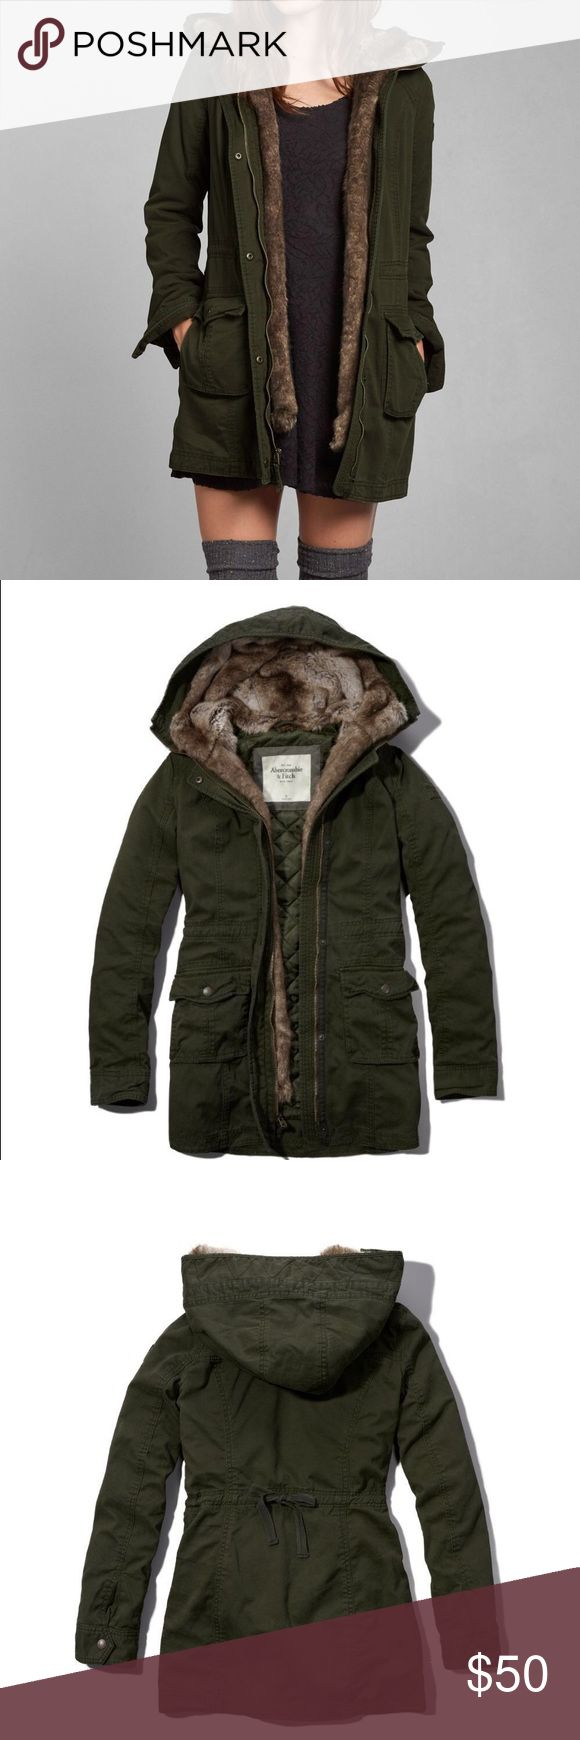 A&F Green Military Style Parka Faux Fur Lined size Xs. like new. has detachable faux fur lining so you can wear it as a light jacket or winter jacket. this coat is so warm!! great condition and super trendy  Abercrombie & Fitch Jackets & Coats Utility Jackets